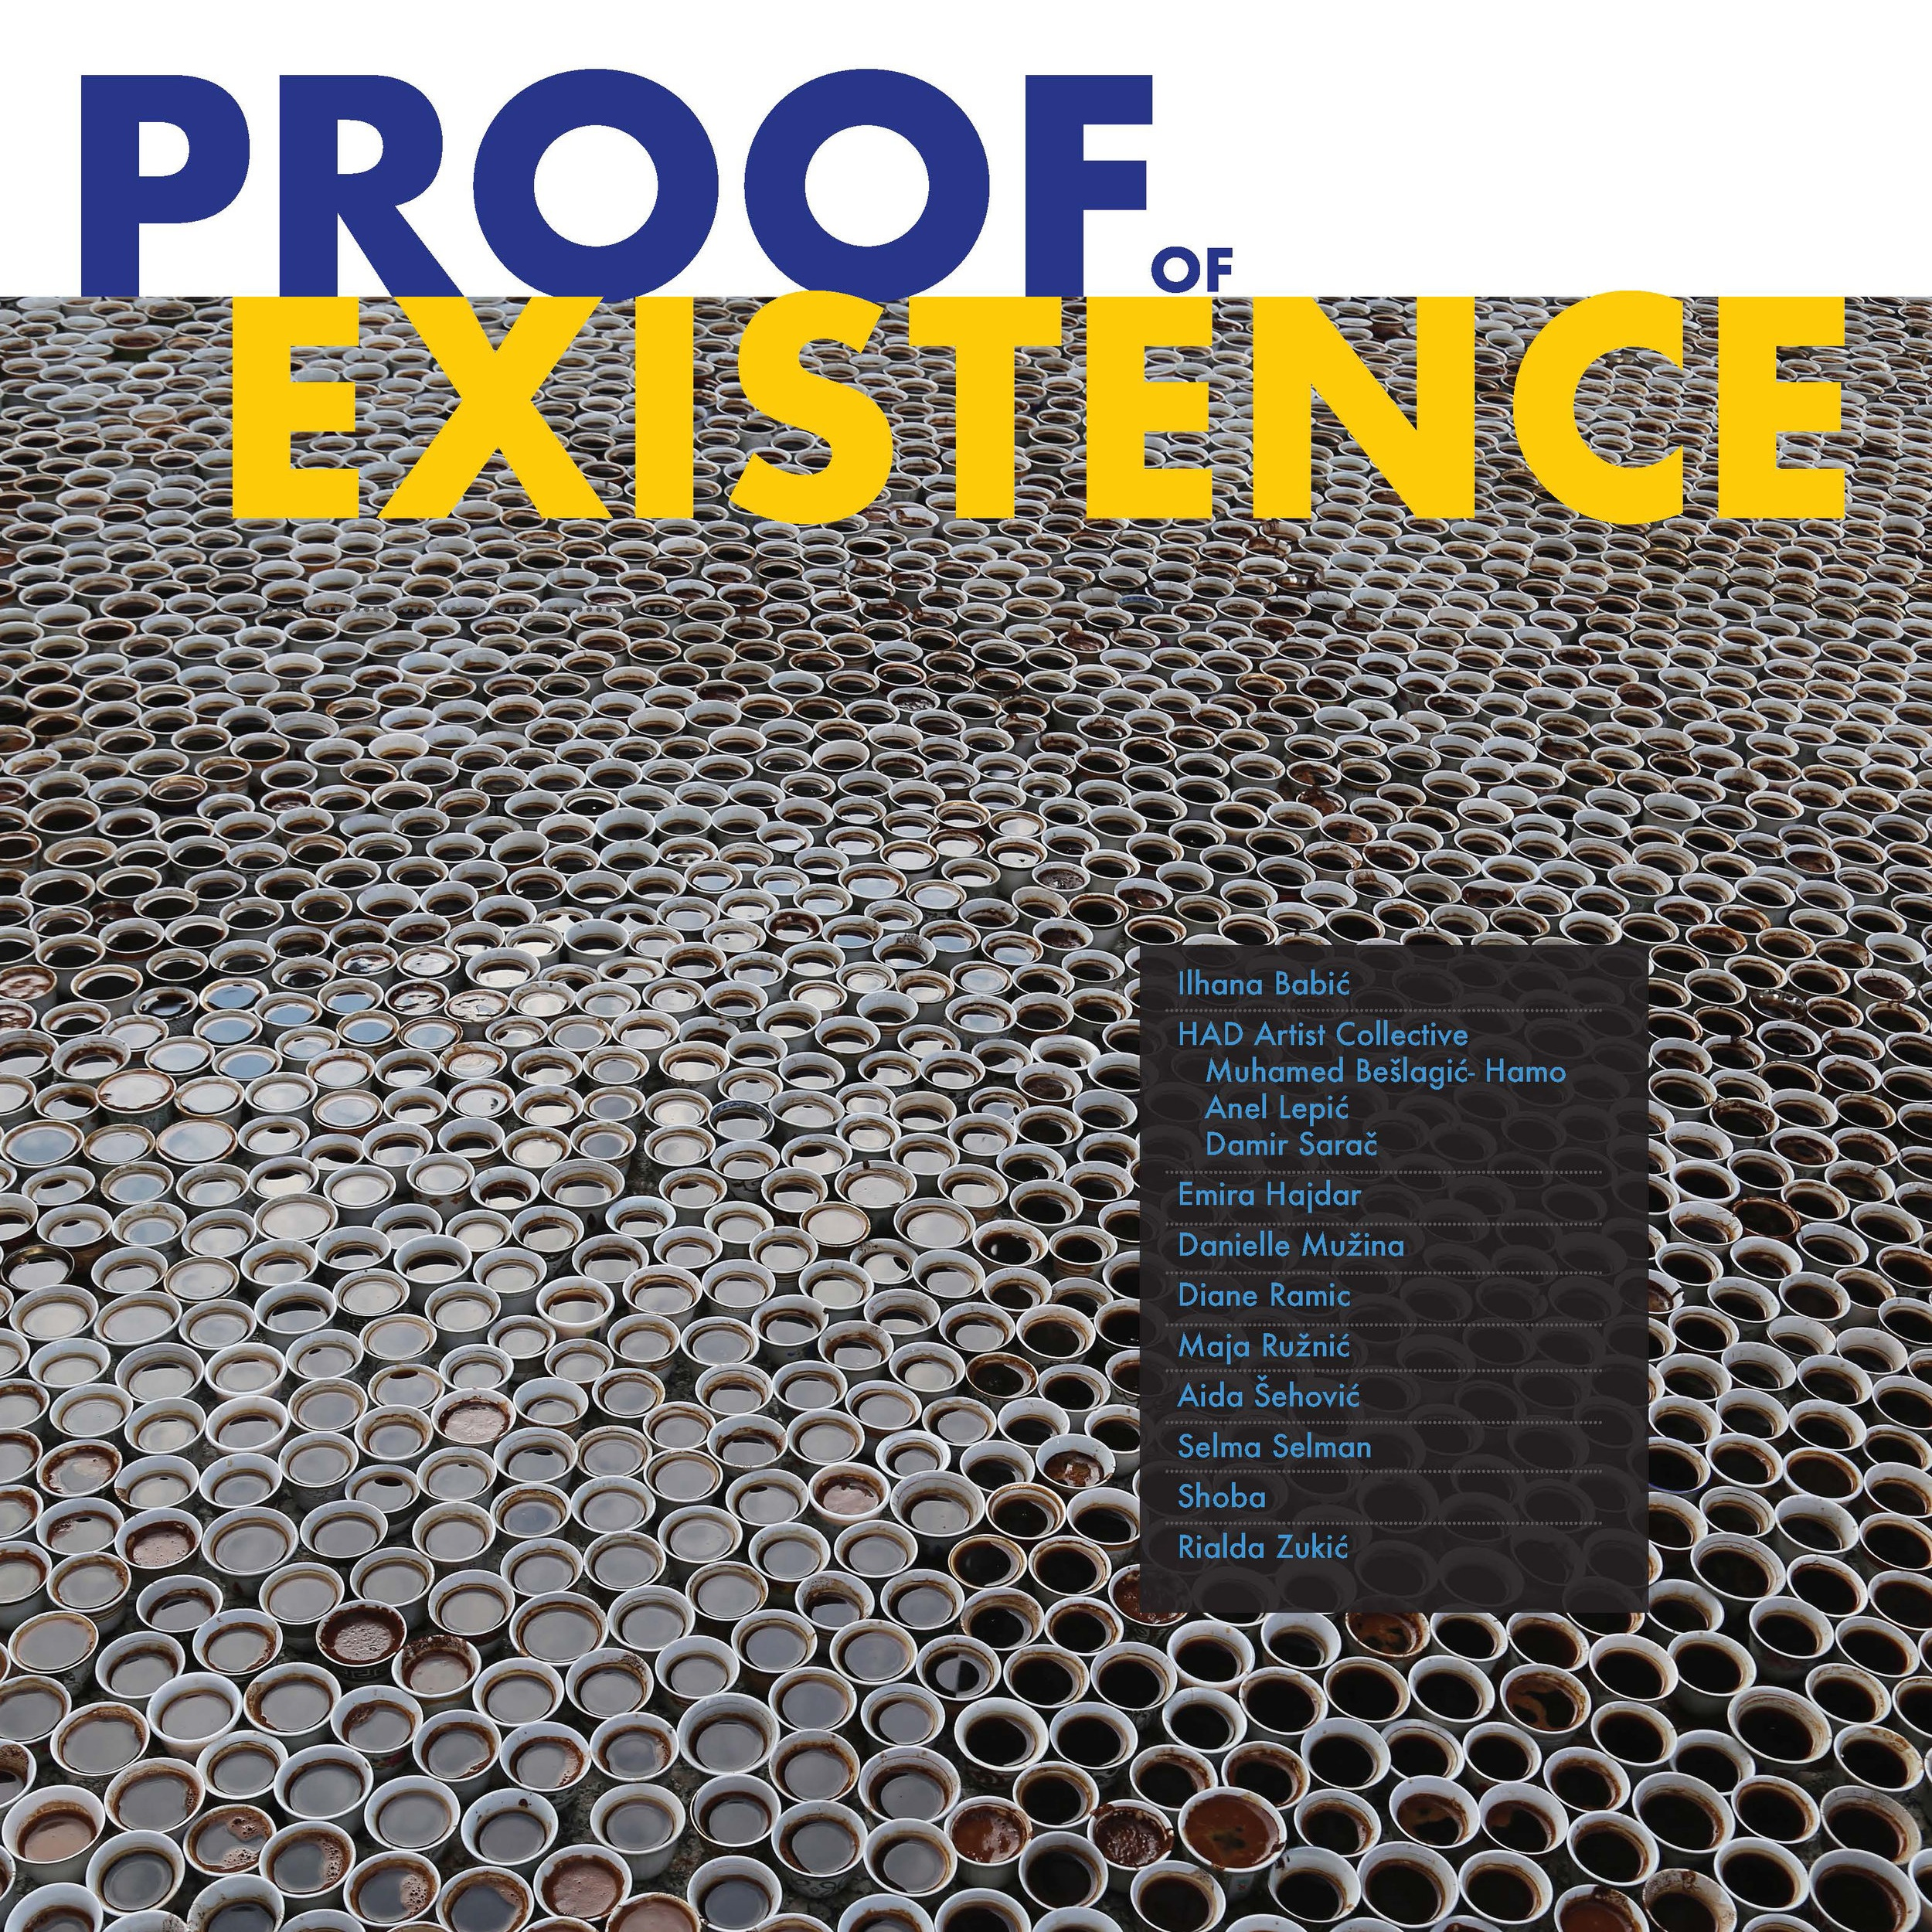 Proof of Existence: An Exhibit of Work by Contemporary Artists of Bosnian and Balkan Origin - January 22 - April 16, 2018